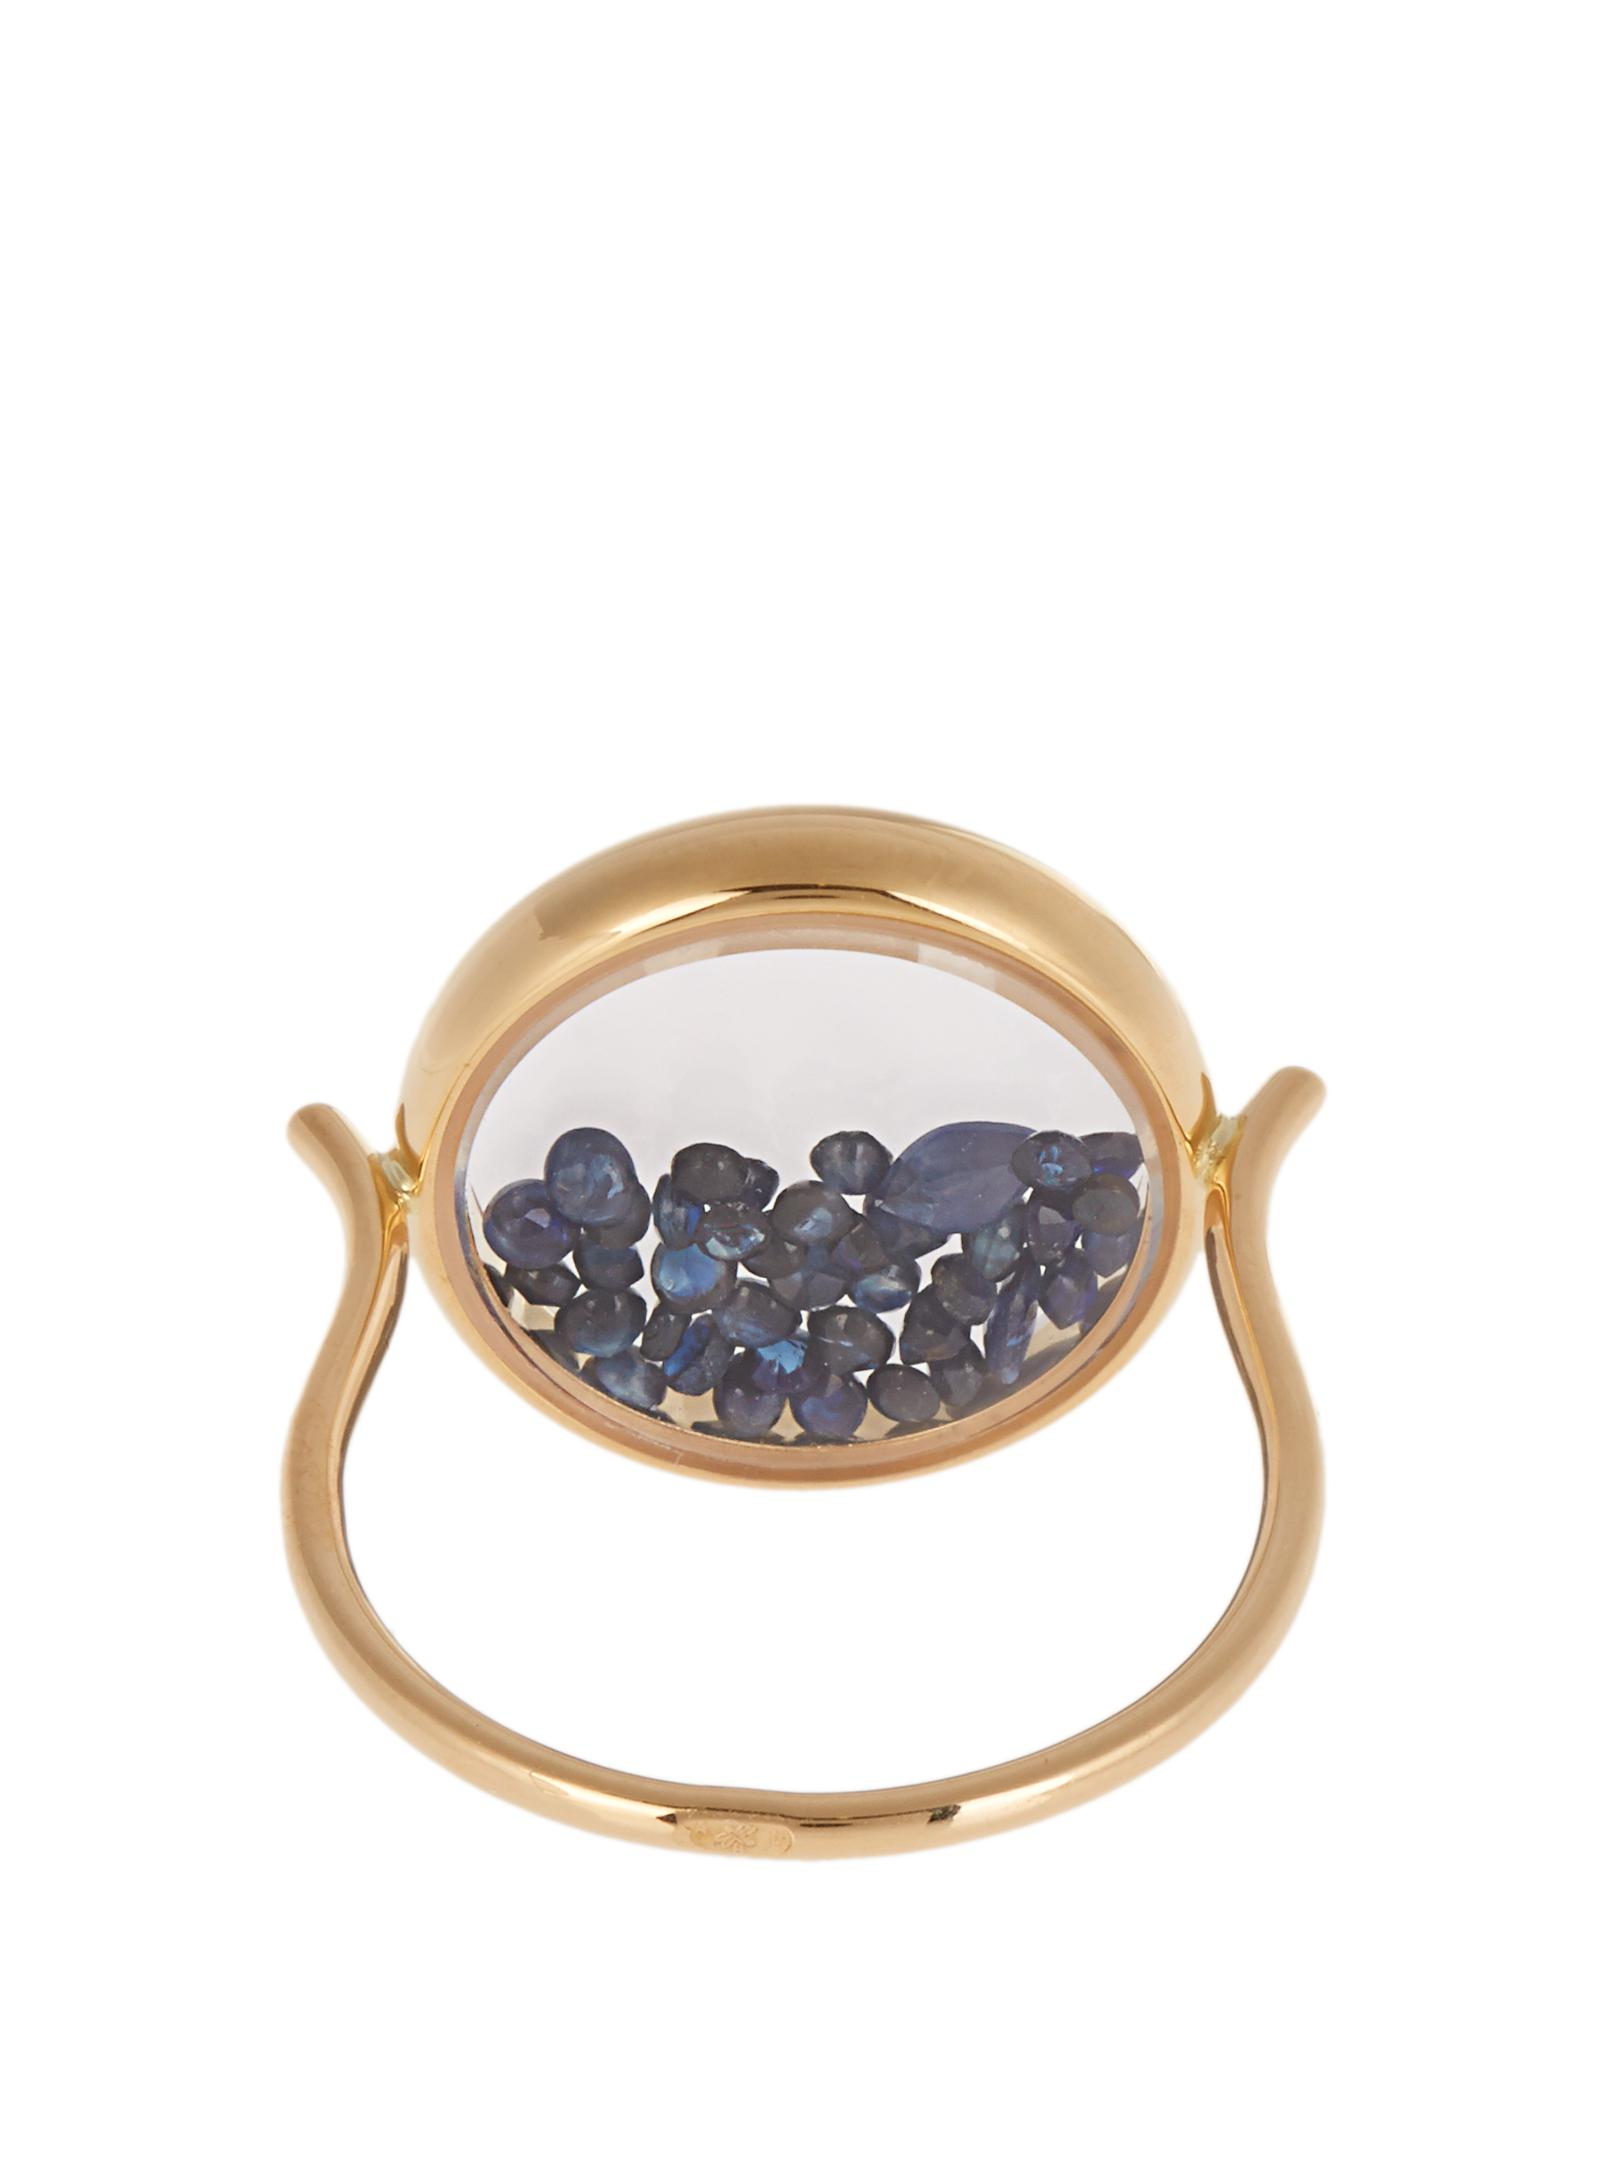 Heart sapphire &amp; yellow-gold ring Aur</ototo></div>                                   <span></span>                               </div>             <div>                                     <div>                                             <div>                                                     <div>                                                             <span>                                 San Francisco                             </span>                                                         </div>                                                 </div>                                             <div>                                                     <ul>                                                             <li>                                                                     <div>                                                                             <a href=